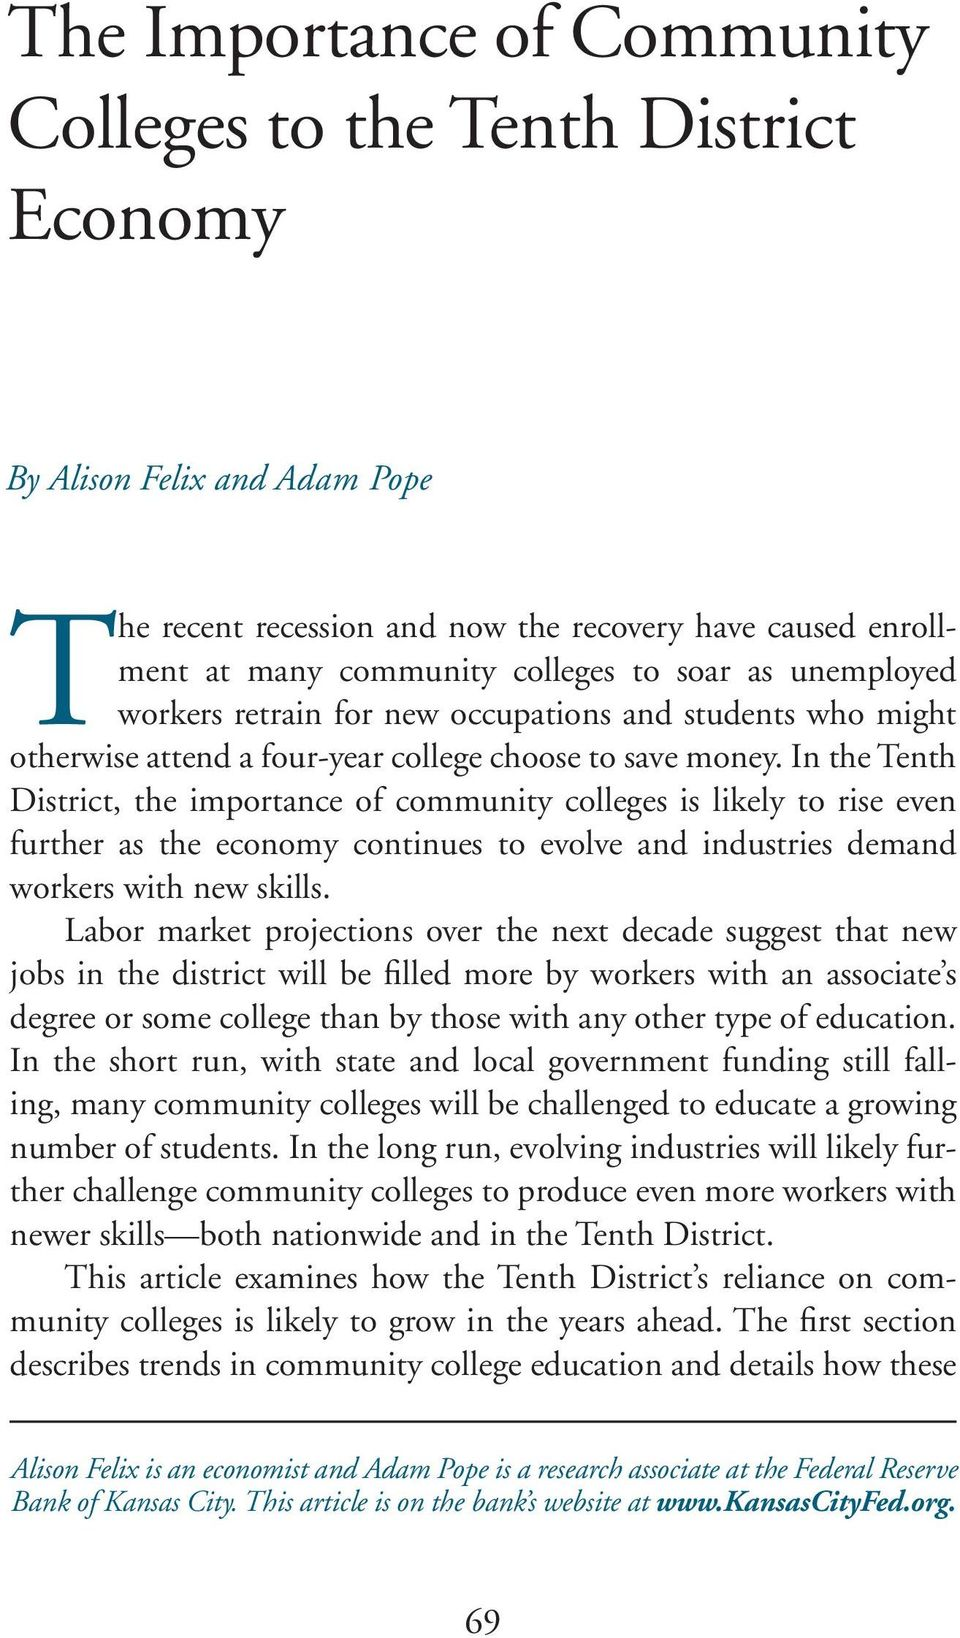 In the Tenth District, the importance of community colleges is likely to rise even further as the economy continues to evolve and industries demand workers with new skills.